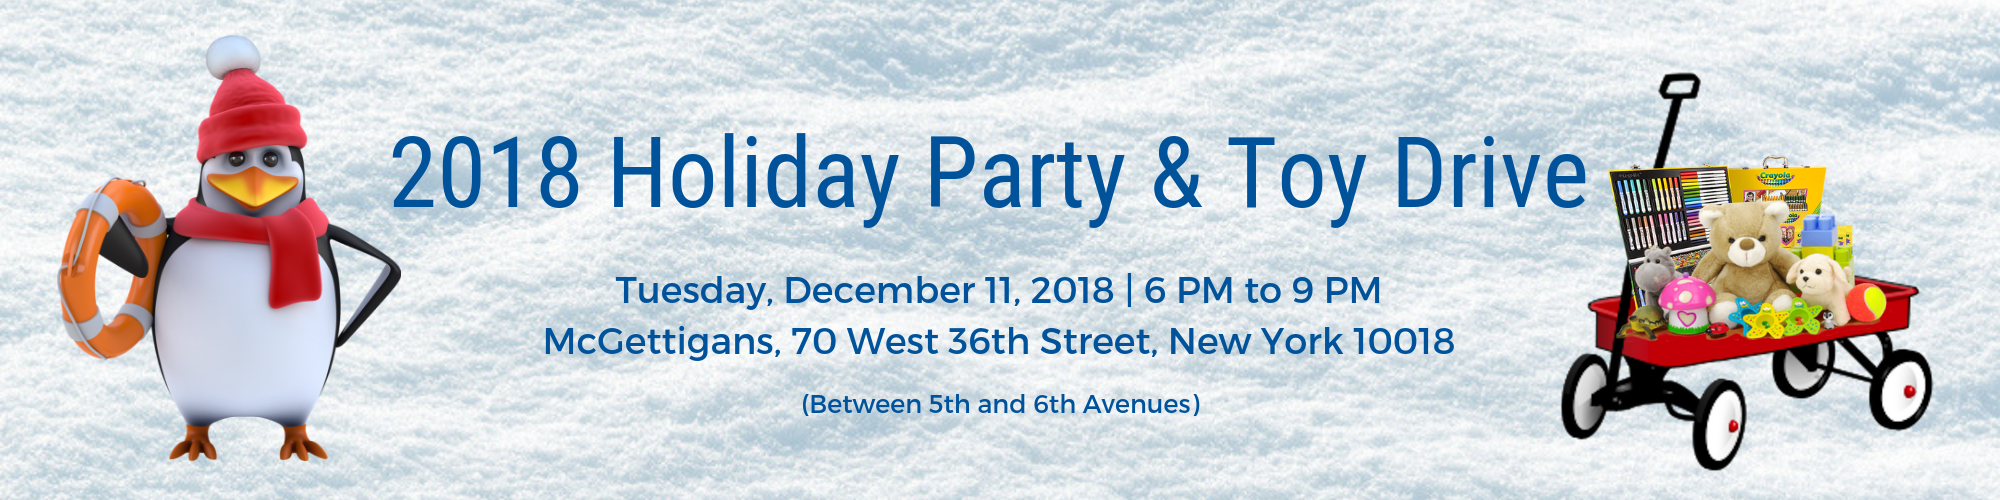 2018 Holiday Party and Toy Drive